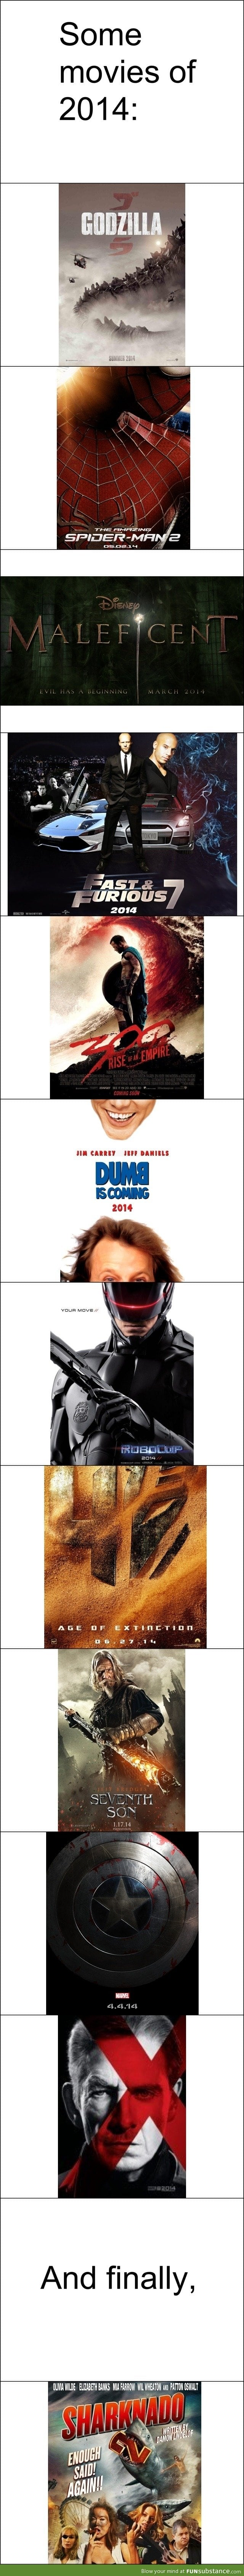 Movies to watch out for in 2014